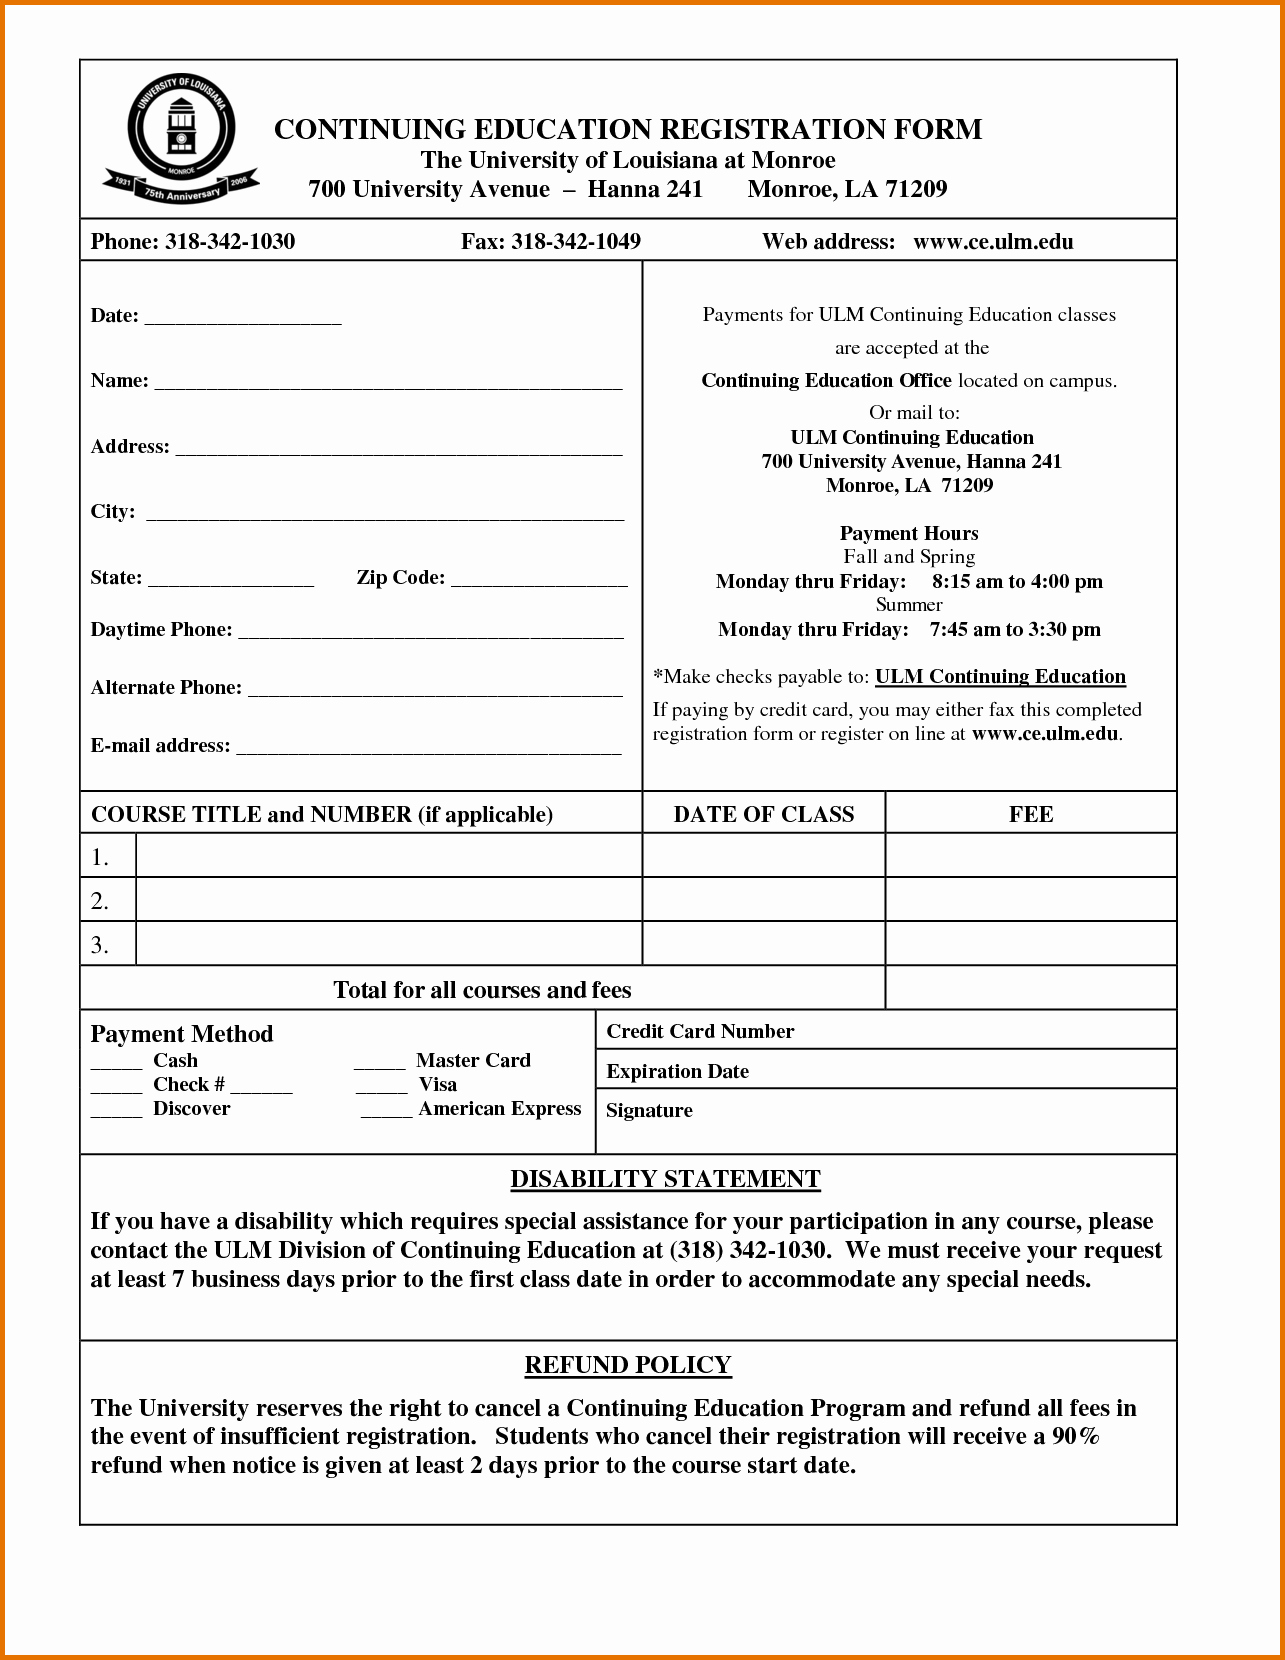 Registration form Template Word Luxury Registration form Template Word